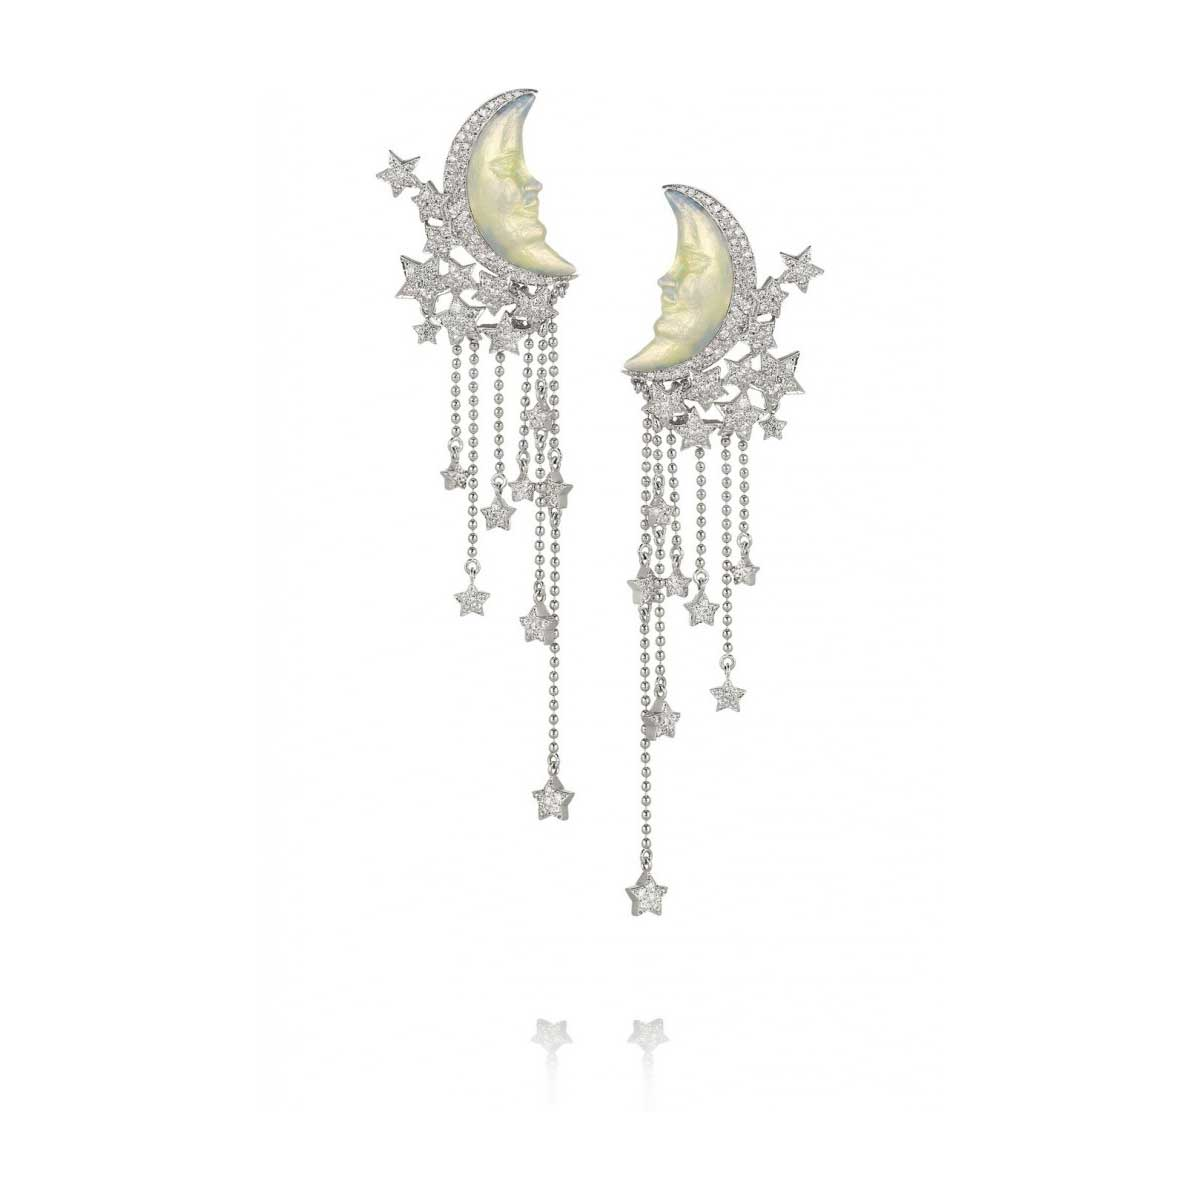 Lydia Courteille Jewellery New Sweet And Sour Collection: Lydia Courteille Moon Earrings